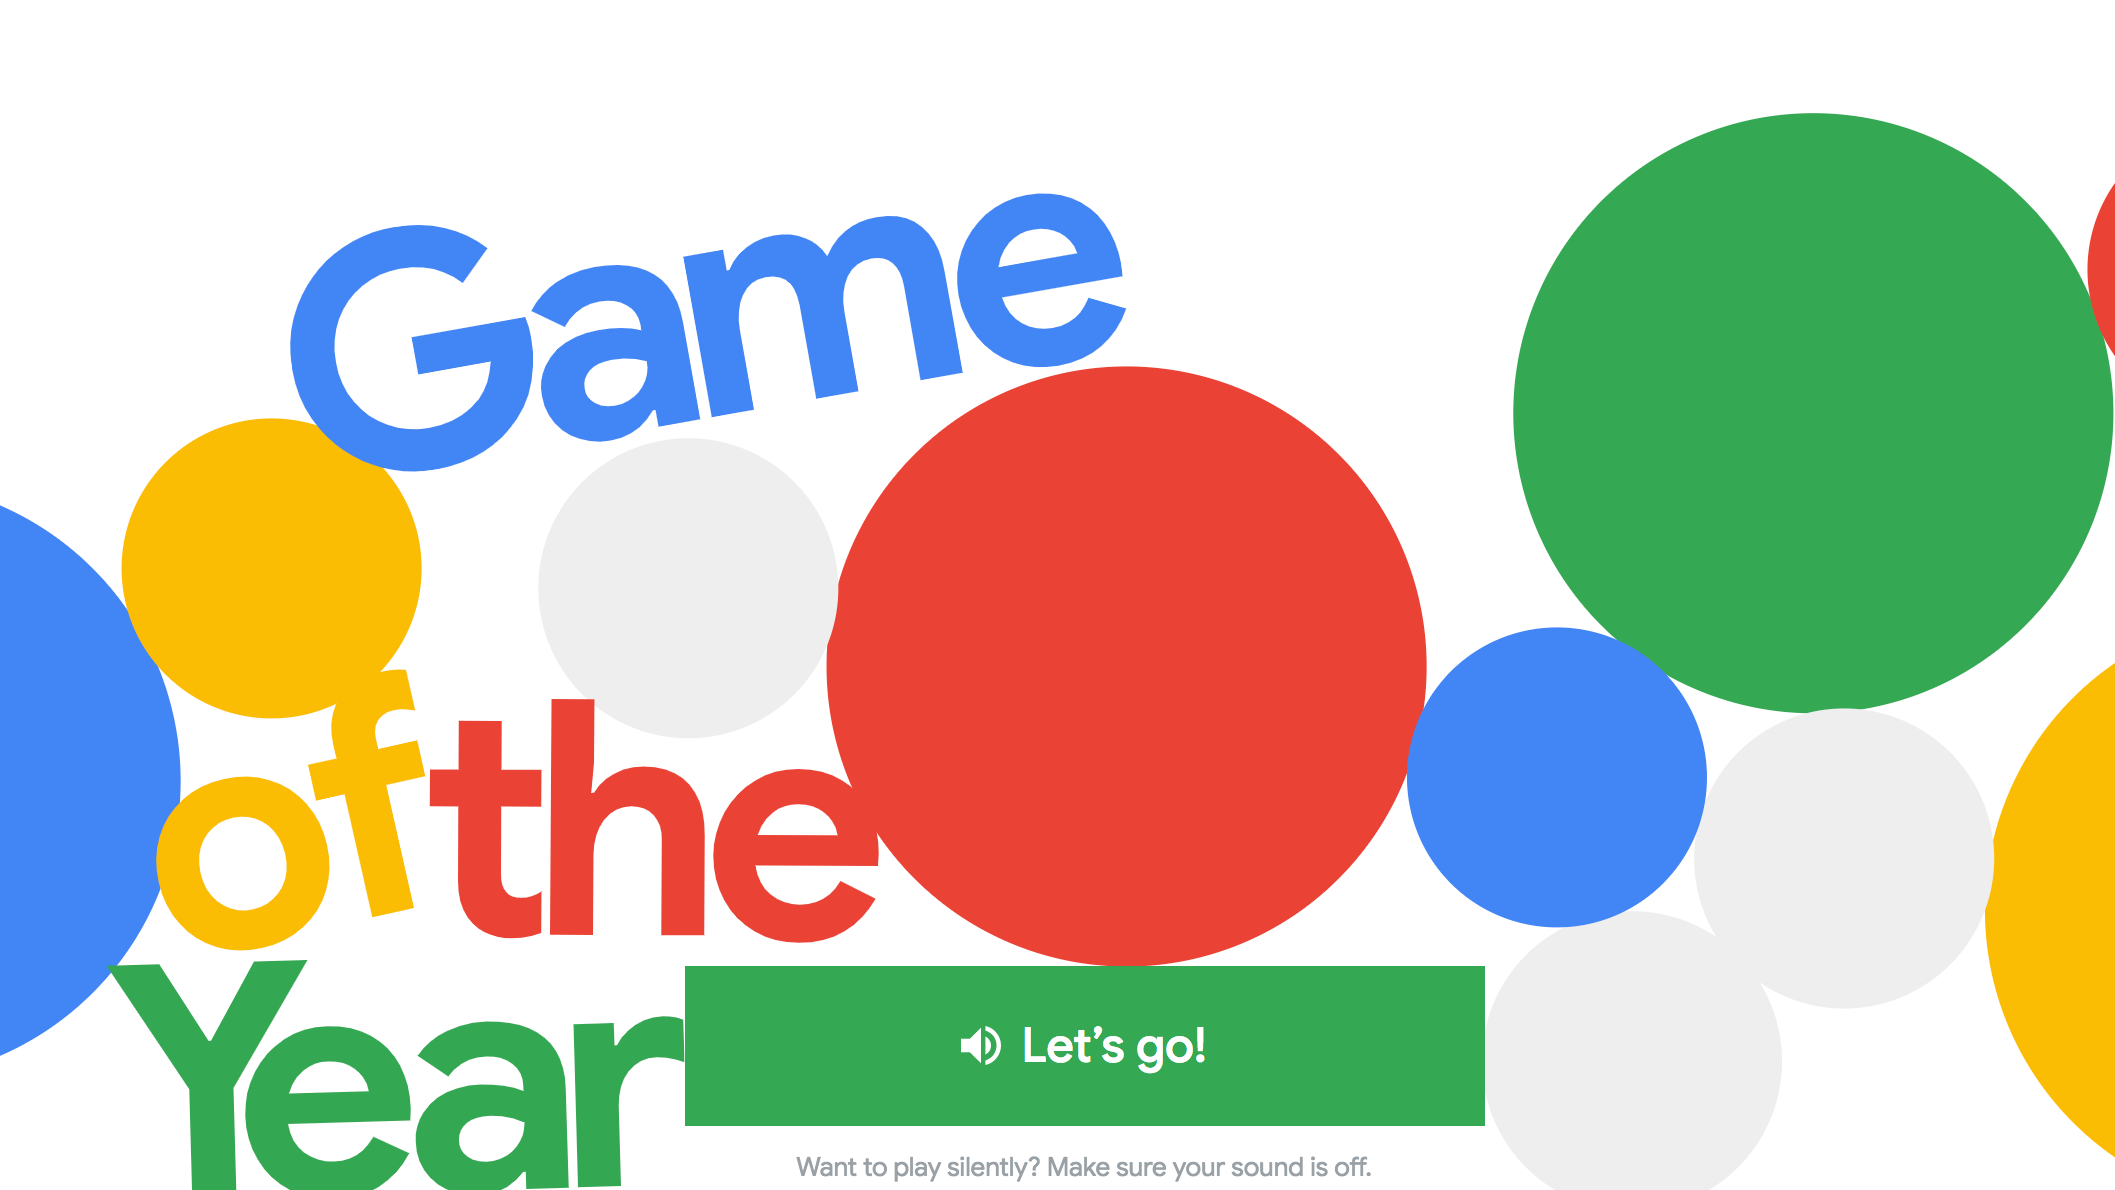 The 2018 Events I Completely Forgot About Until I Played Google's 'Game Of The Year'